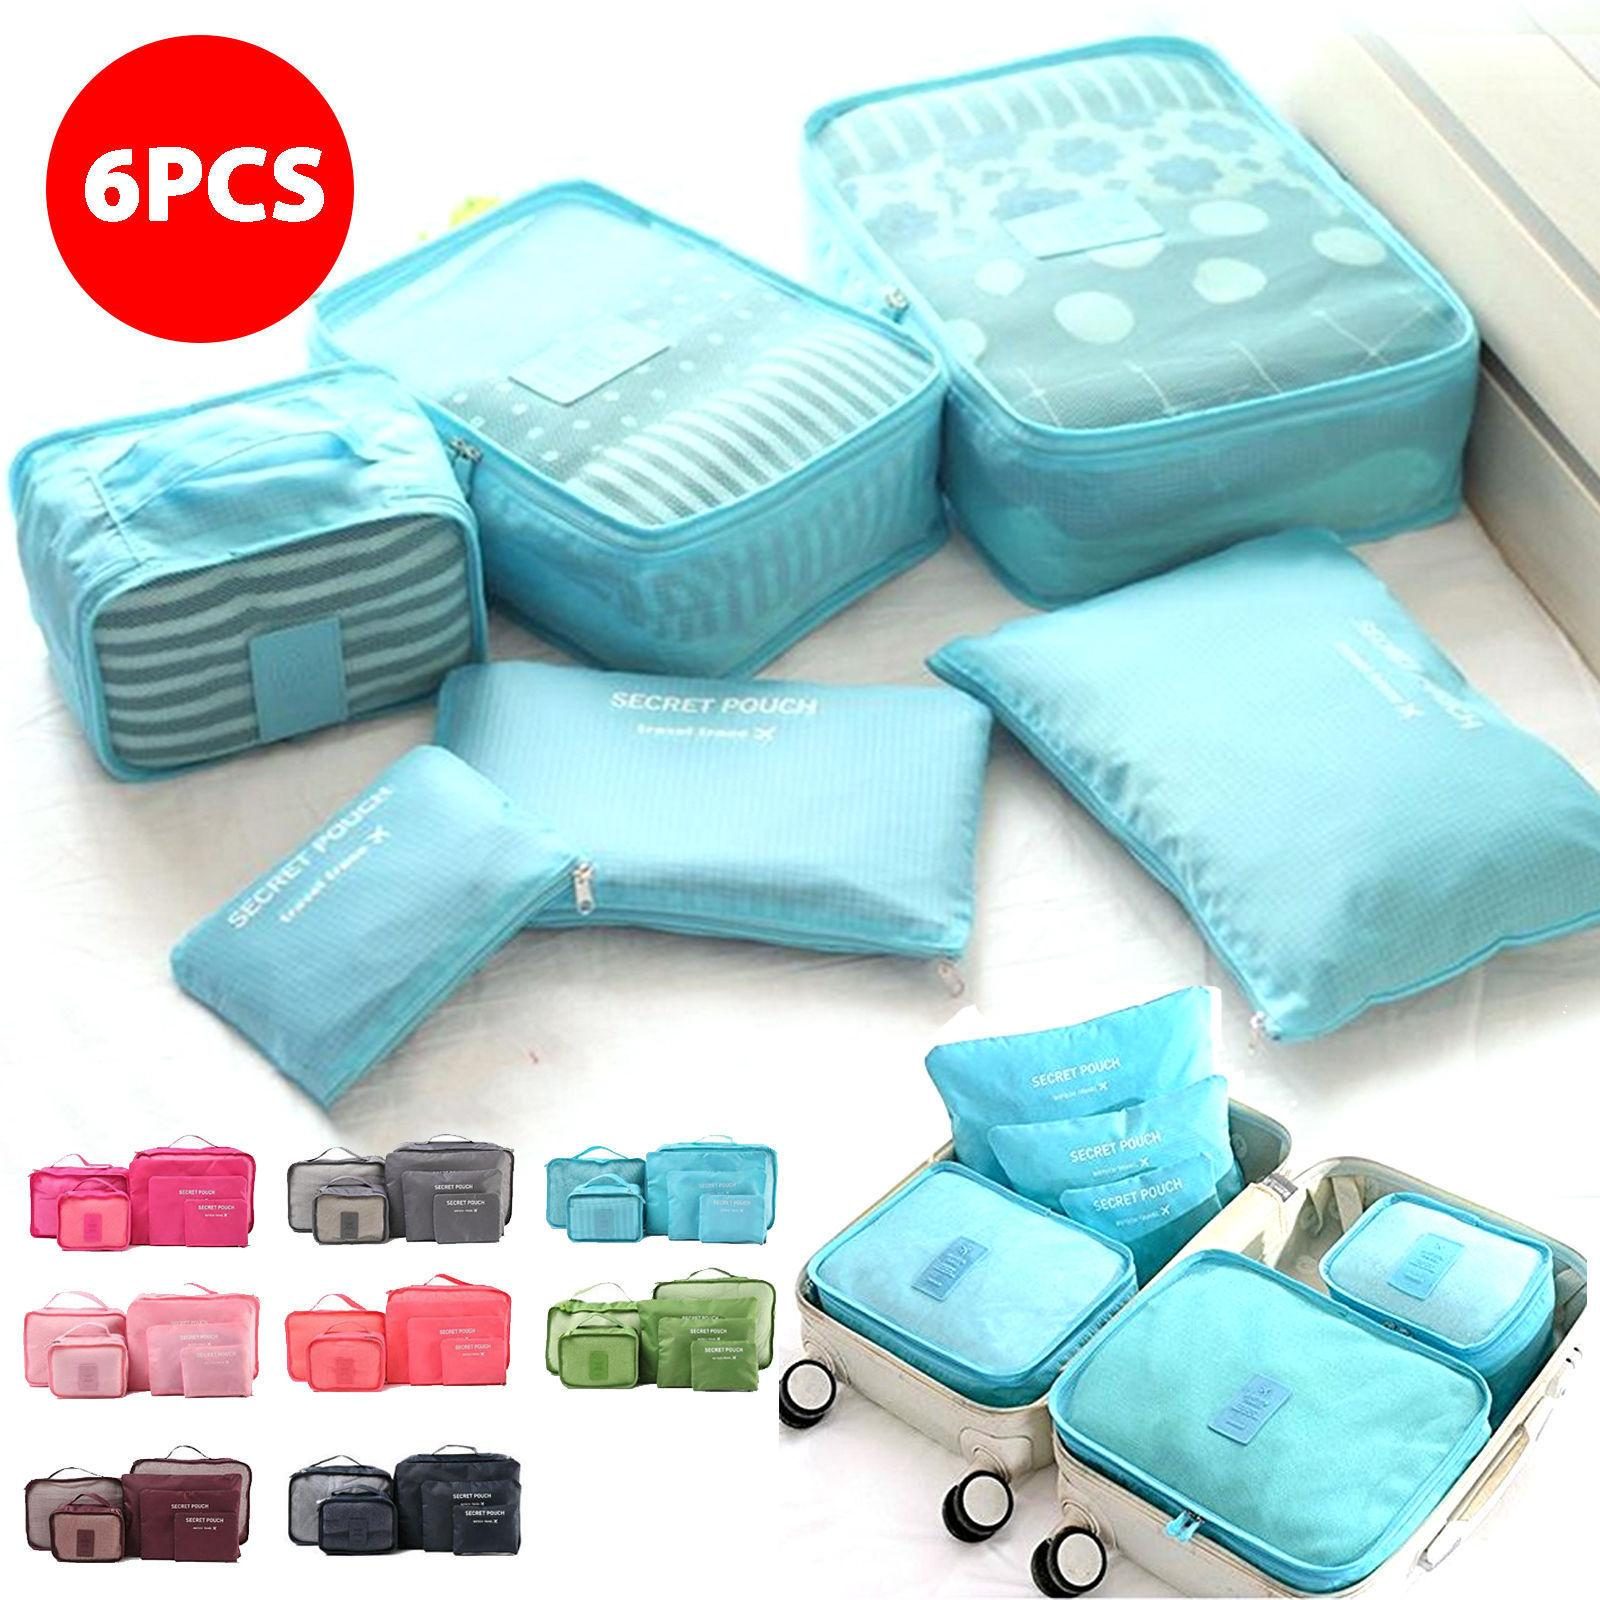 6 Pcs/Set Travel makeup bag Home Luggage Storage Clothes Storage Organizer Portable Cosmetic Bags Bra Underwear Pouch Storage Bags BBA357